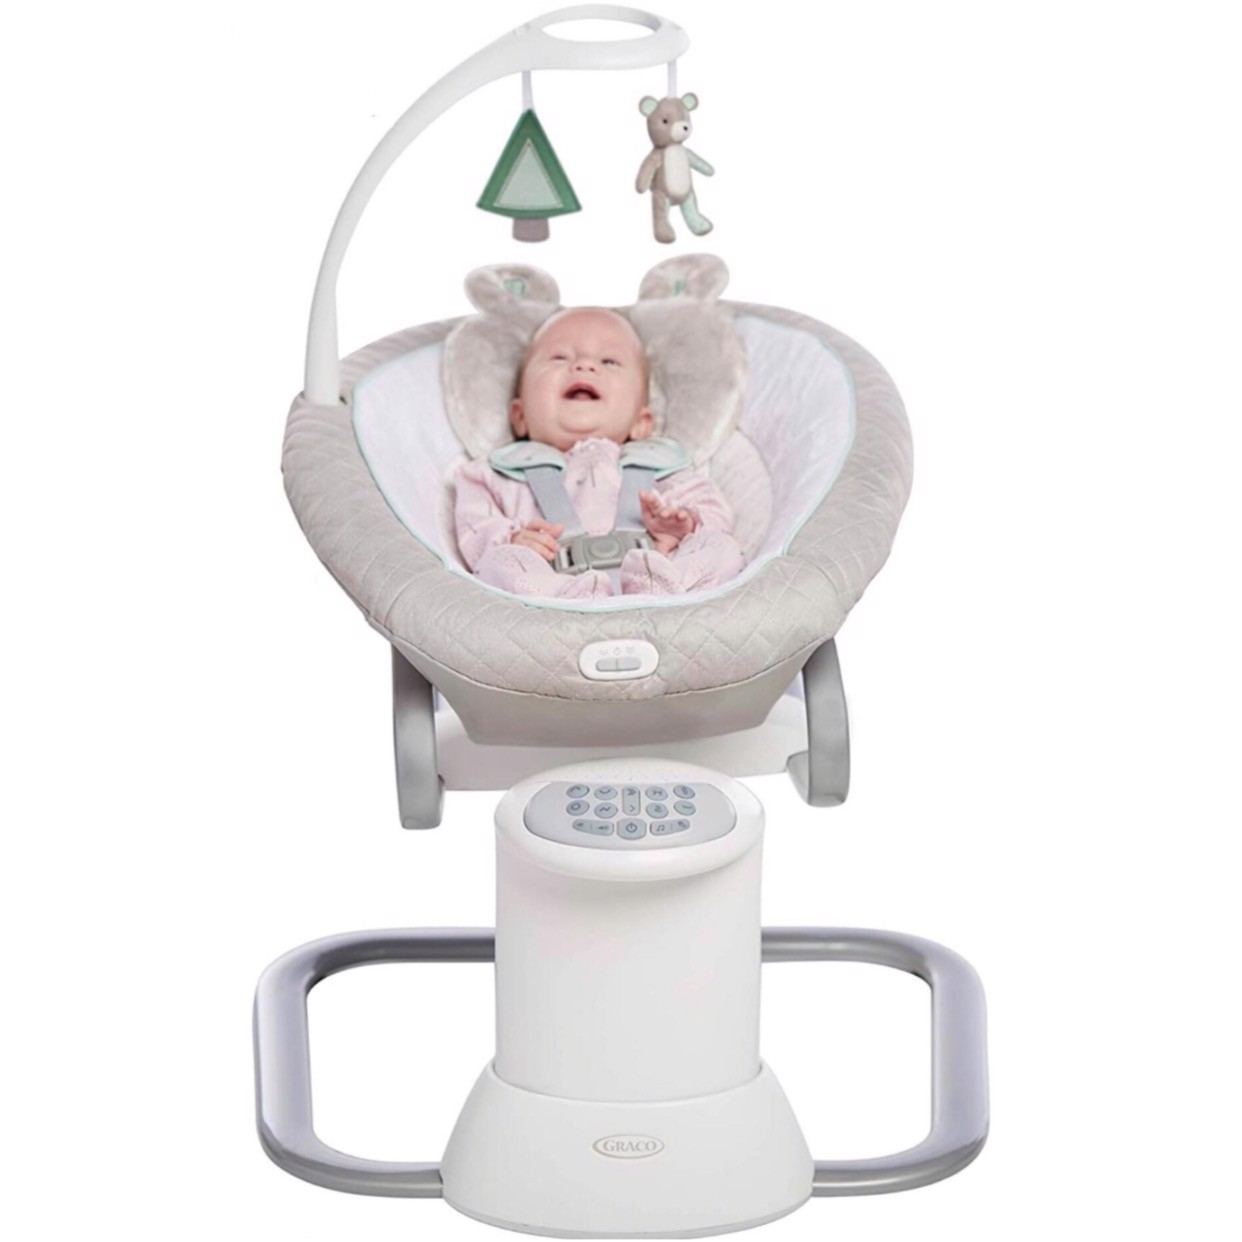 Nôi Graco EveryWay Soother Baby Swing with Removable Rocker, Tristan